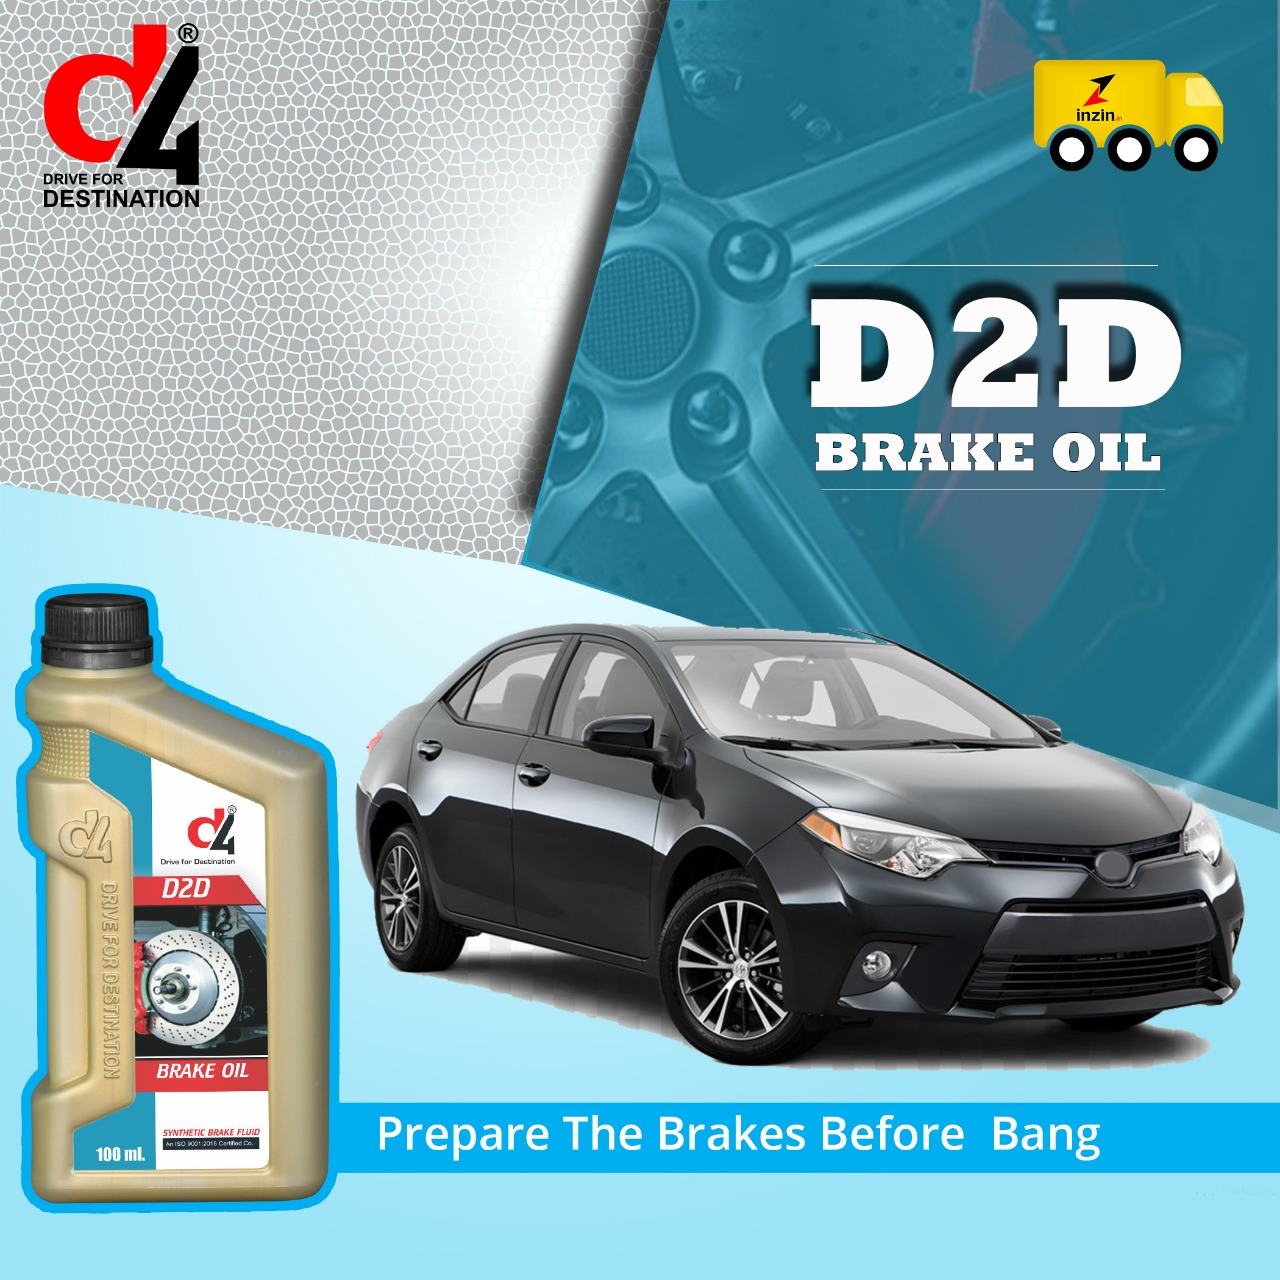 Car Brake Oil Manufacturers